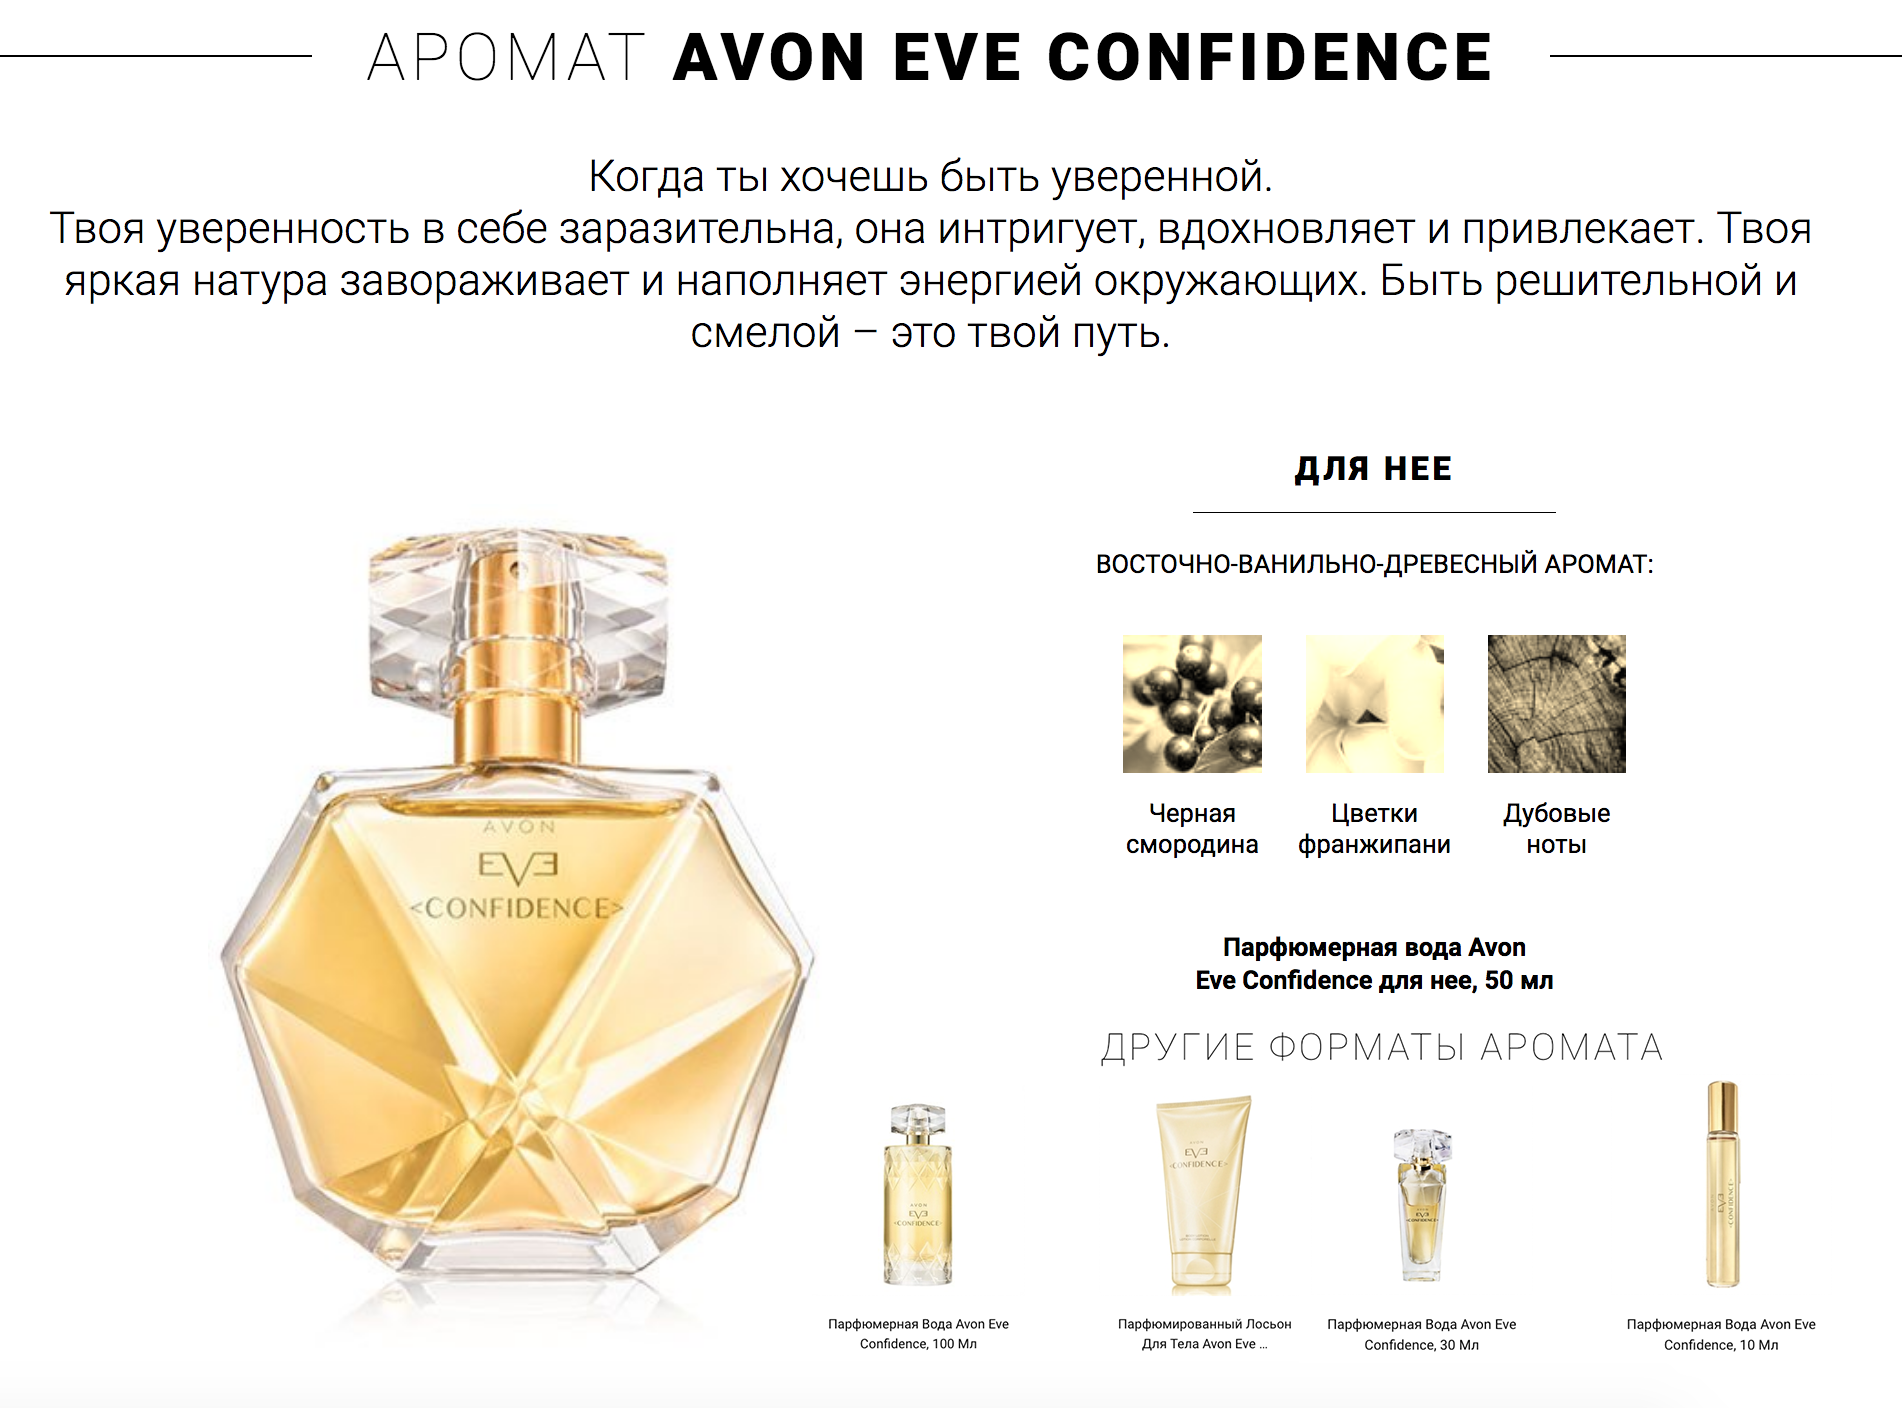 AVON EVE CONFIDENCE